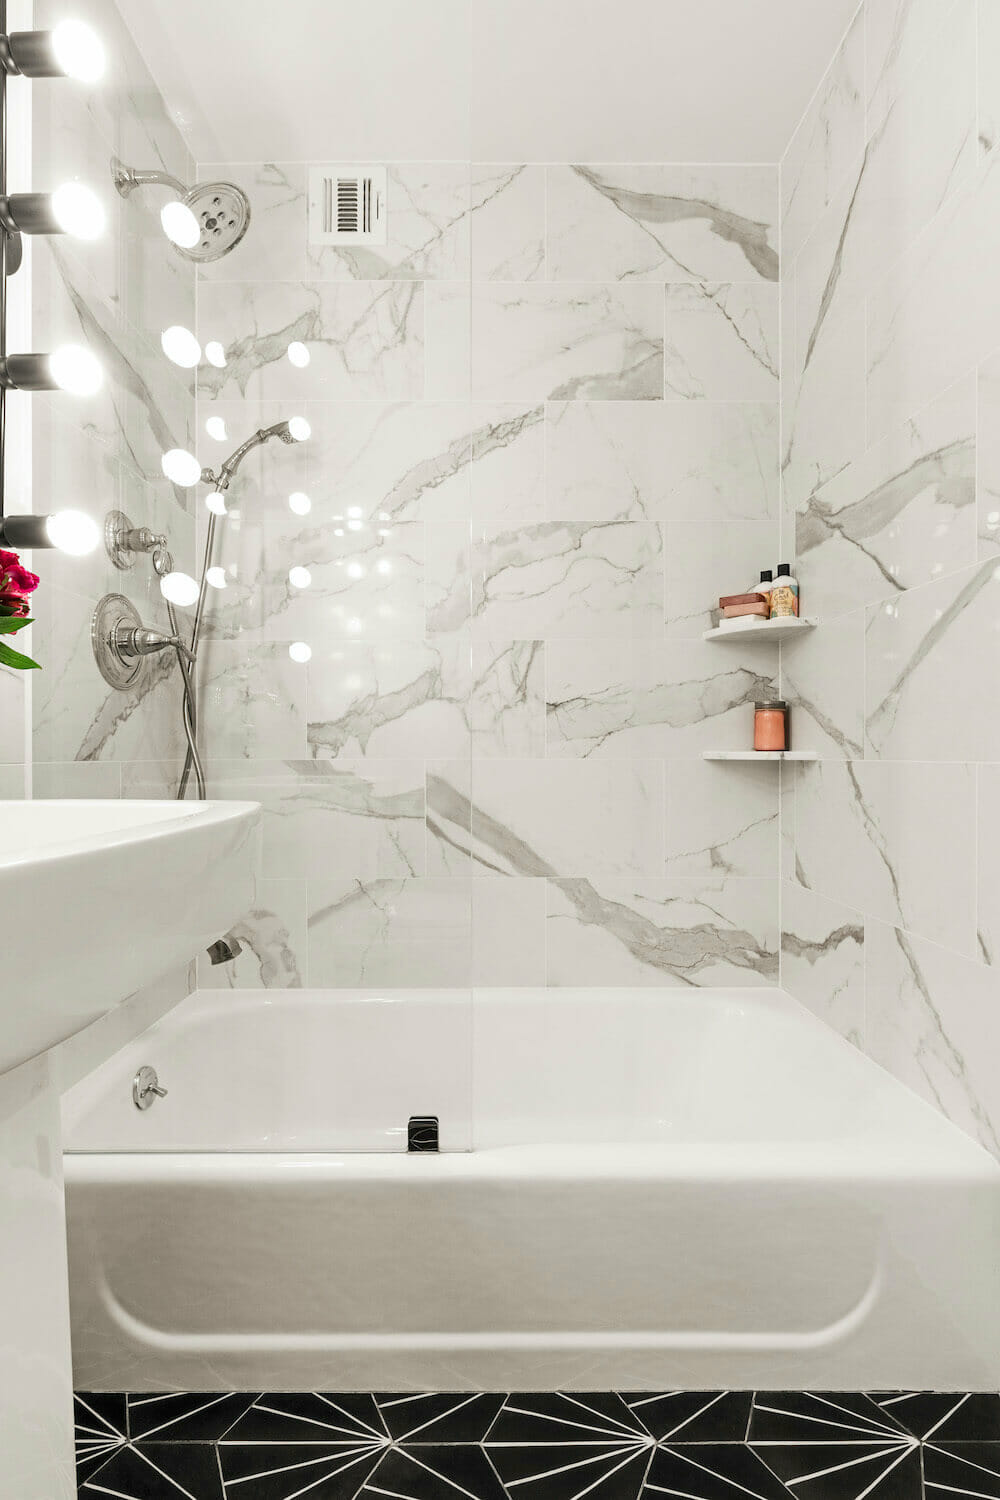 Image of a bathtub with Calacatta marble walls